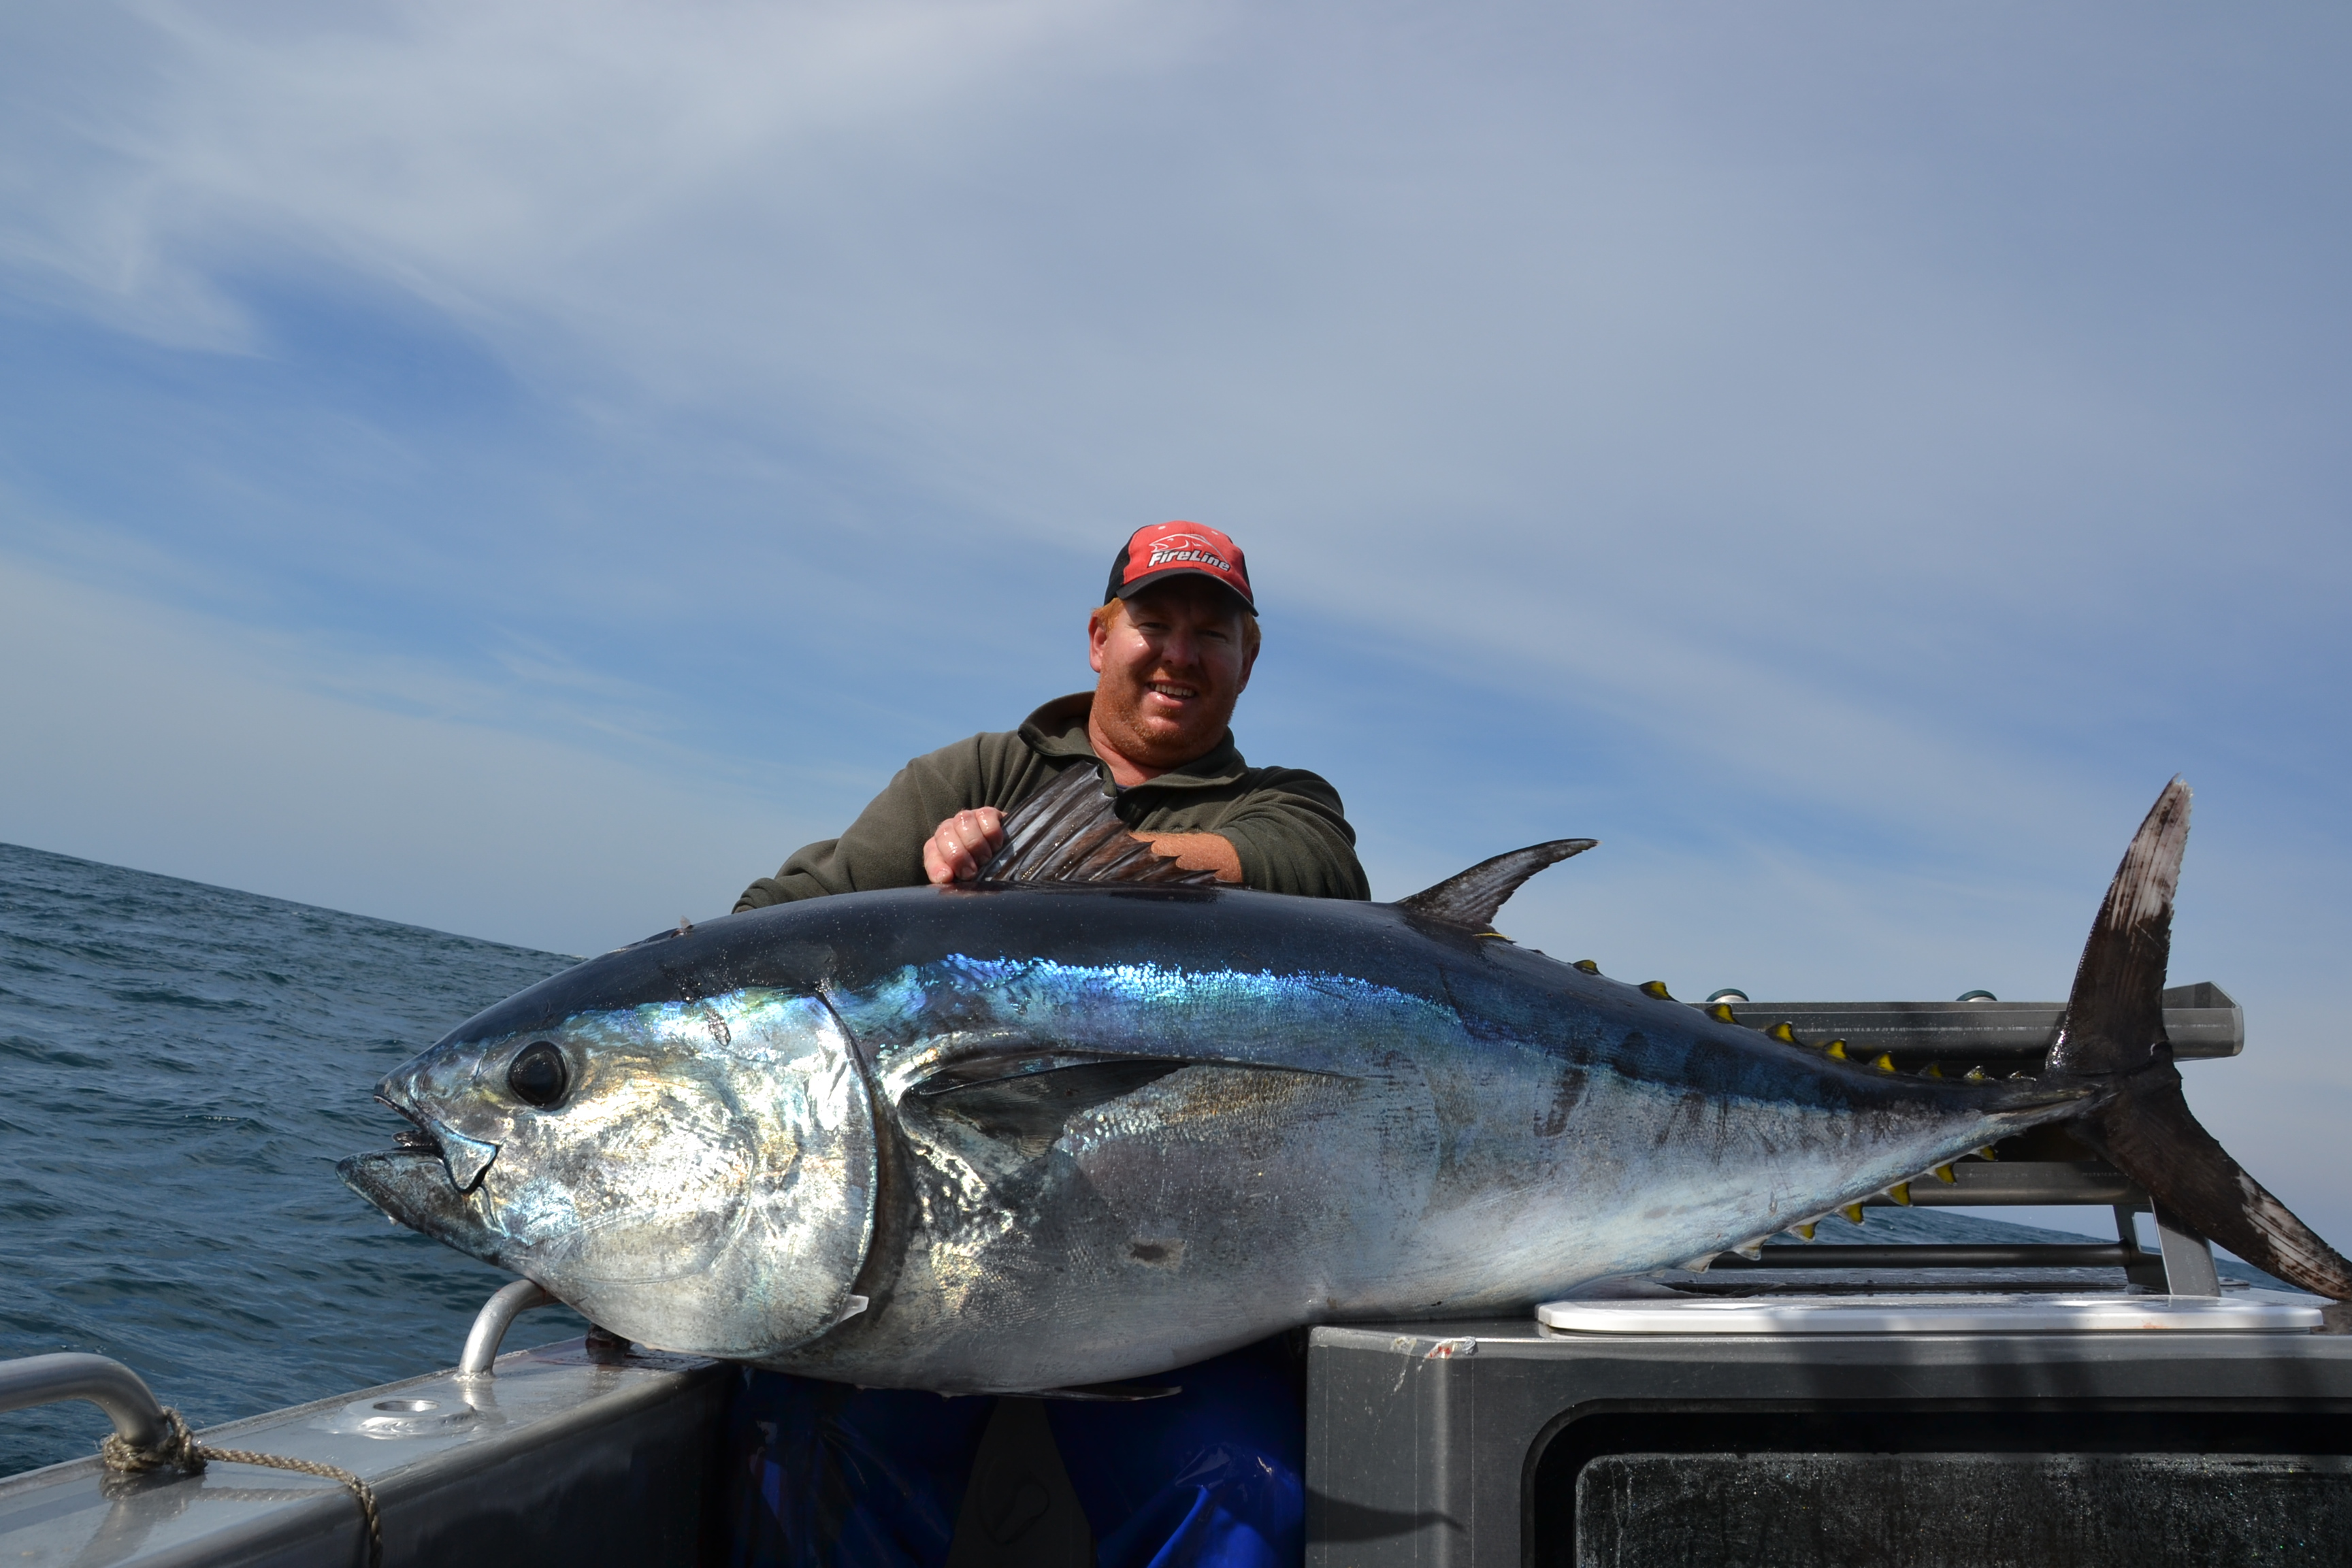 Matt Bell with the southern bluefin tuna